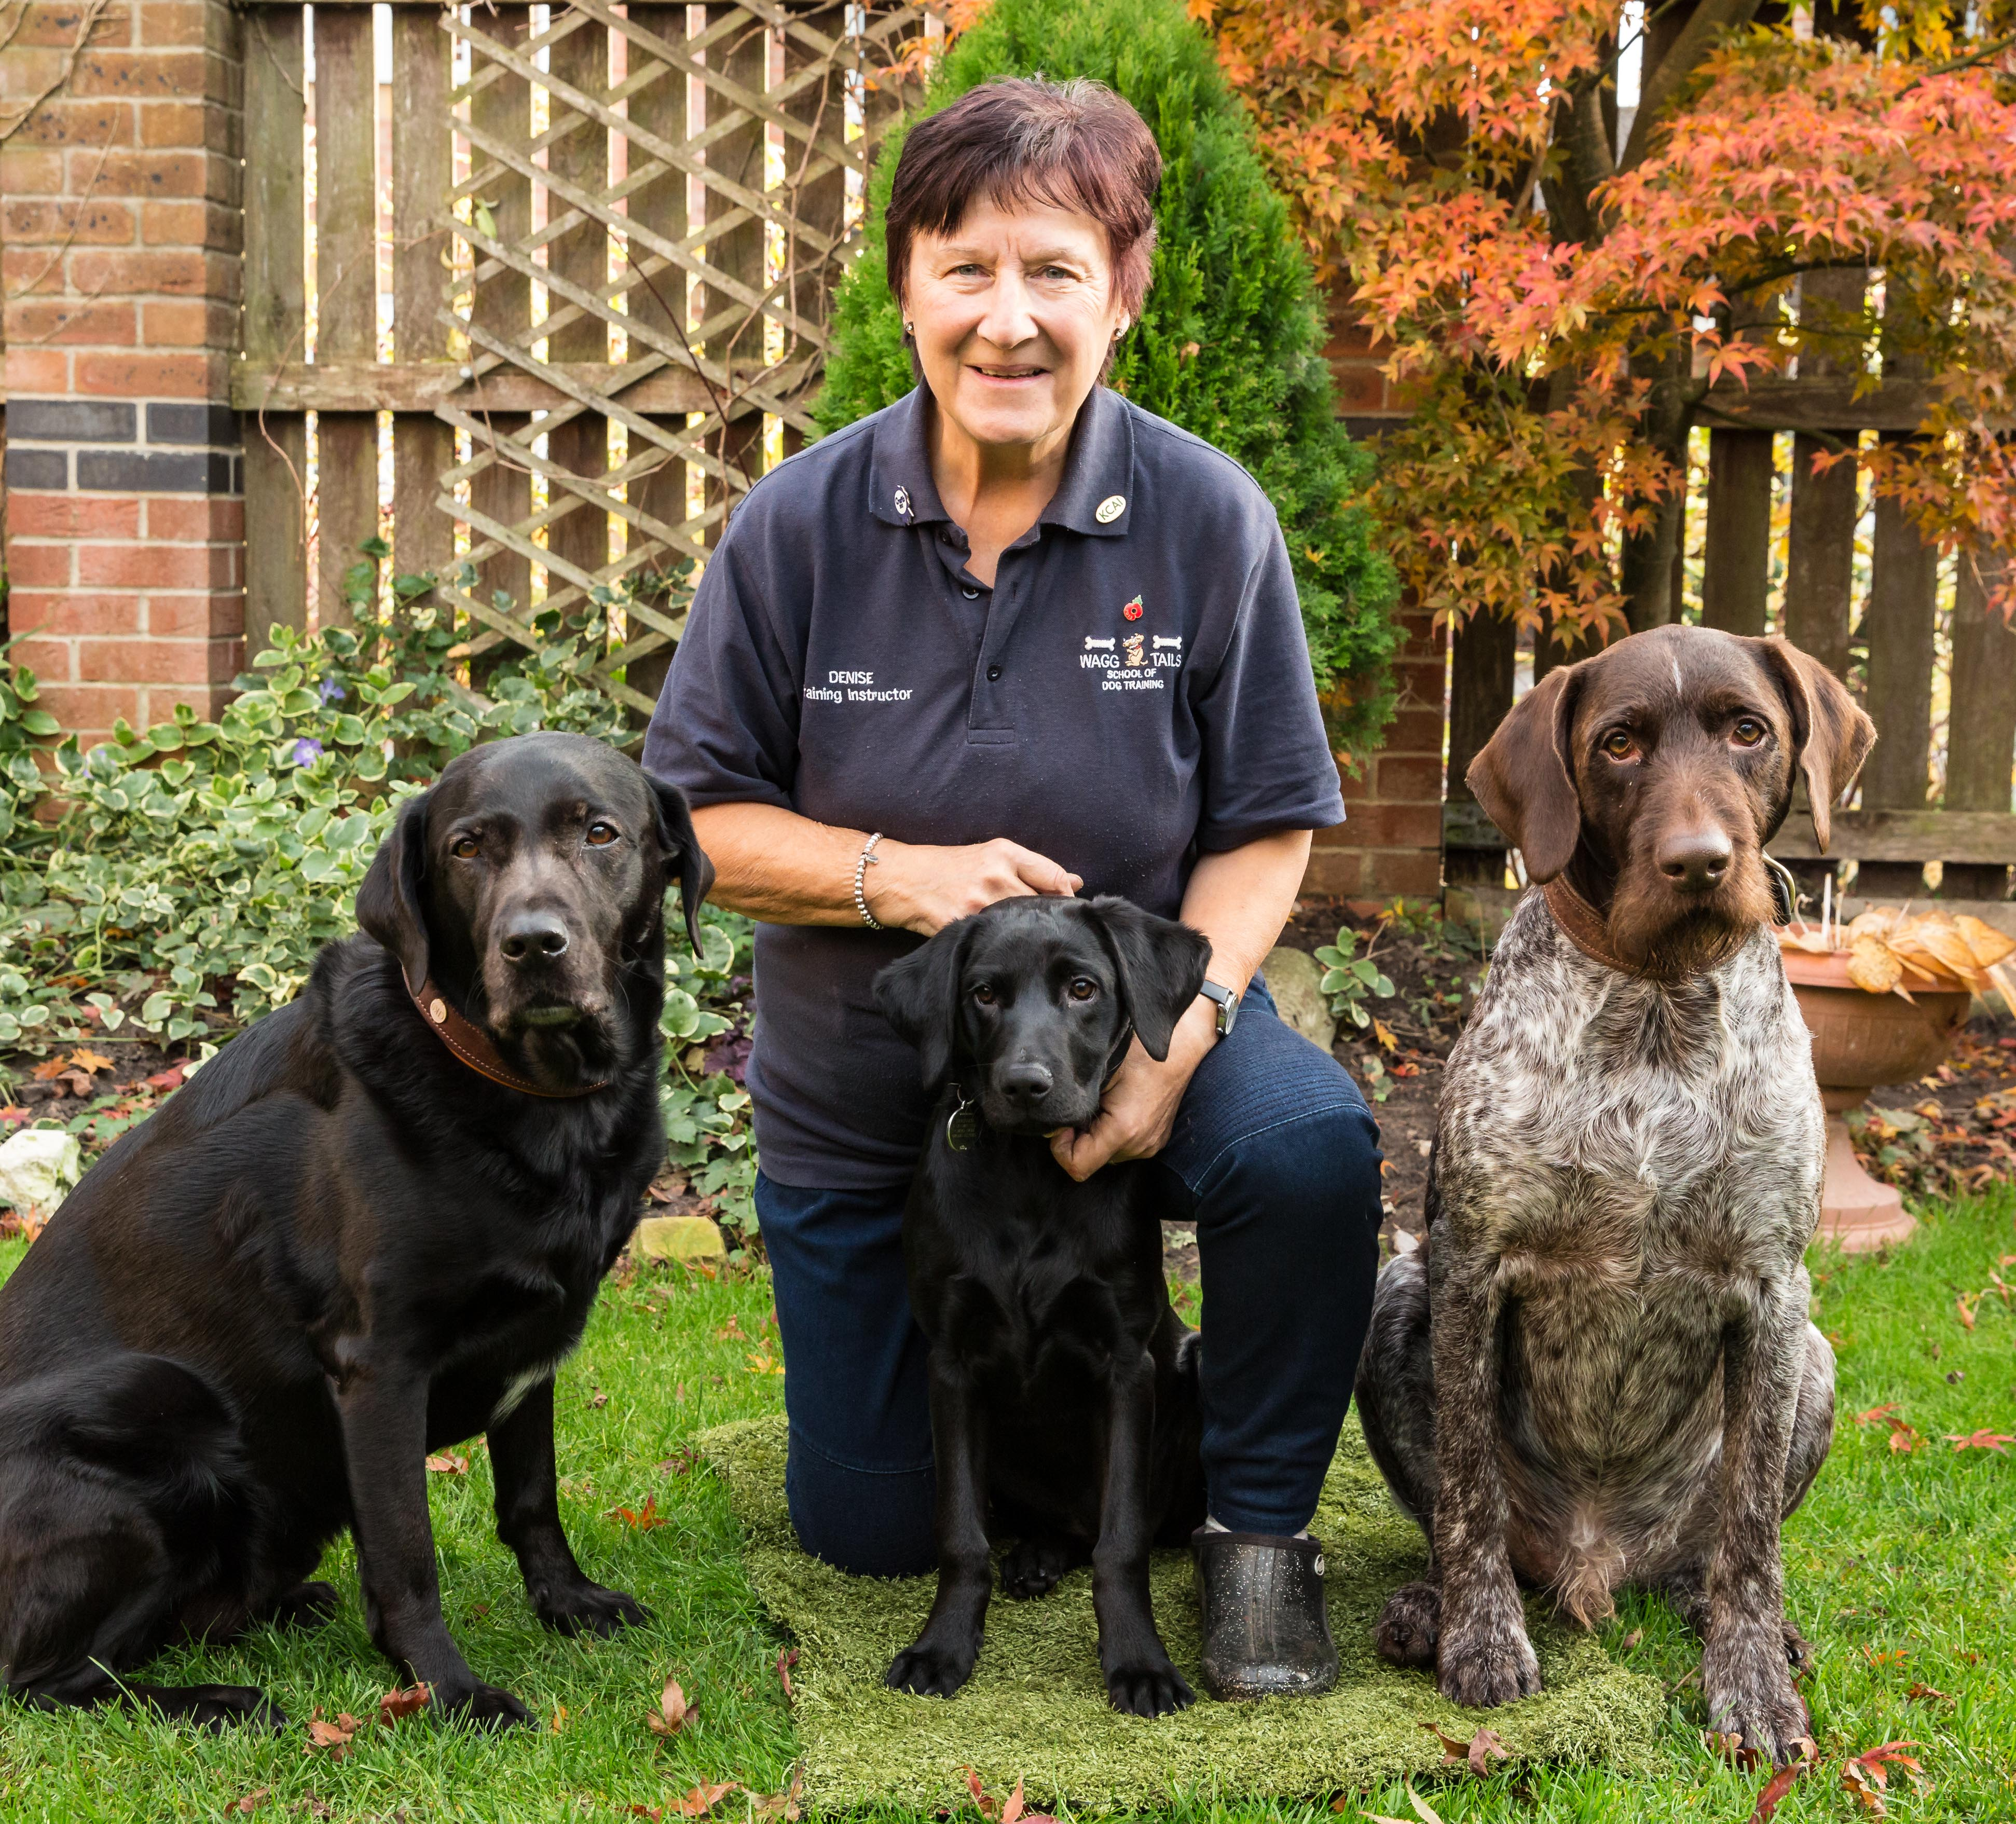 CHESHIRE DOG TRAINER NOMINATED FOR KCAI TRAINER OF THE YEAR AWARD